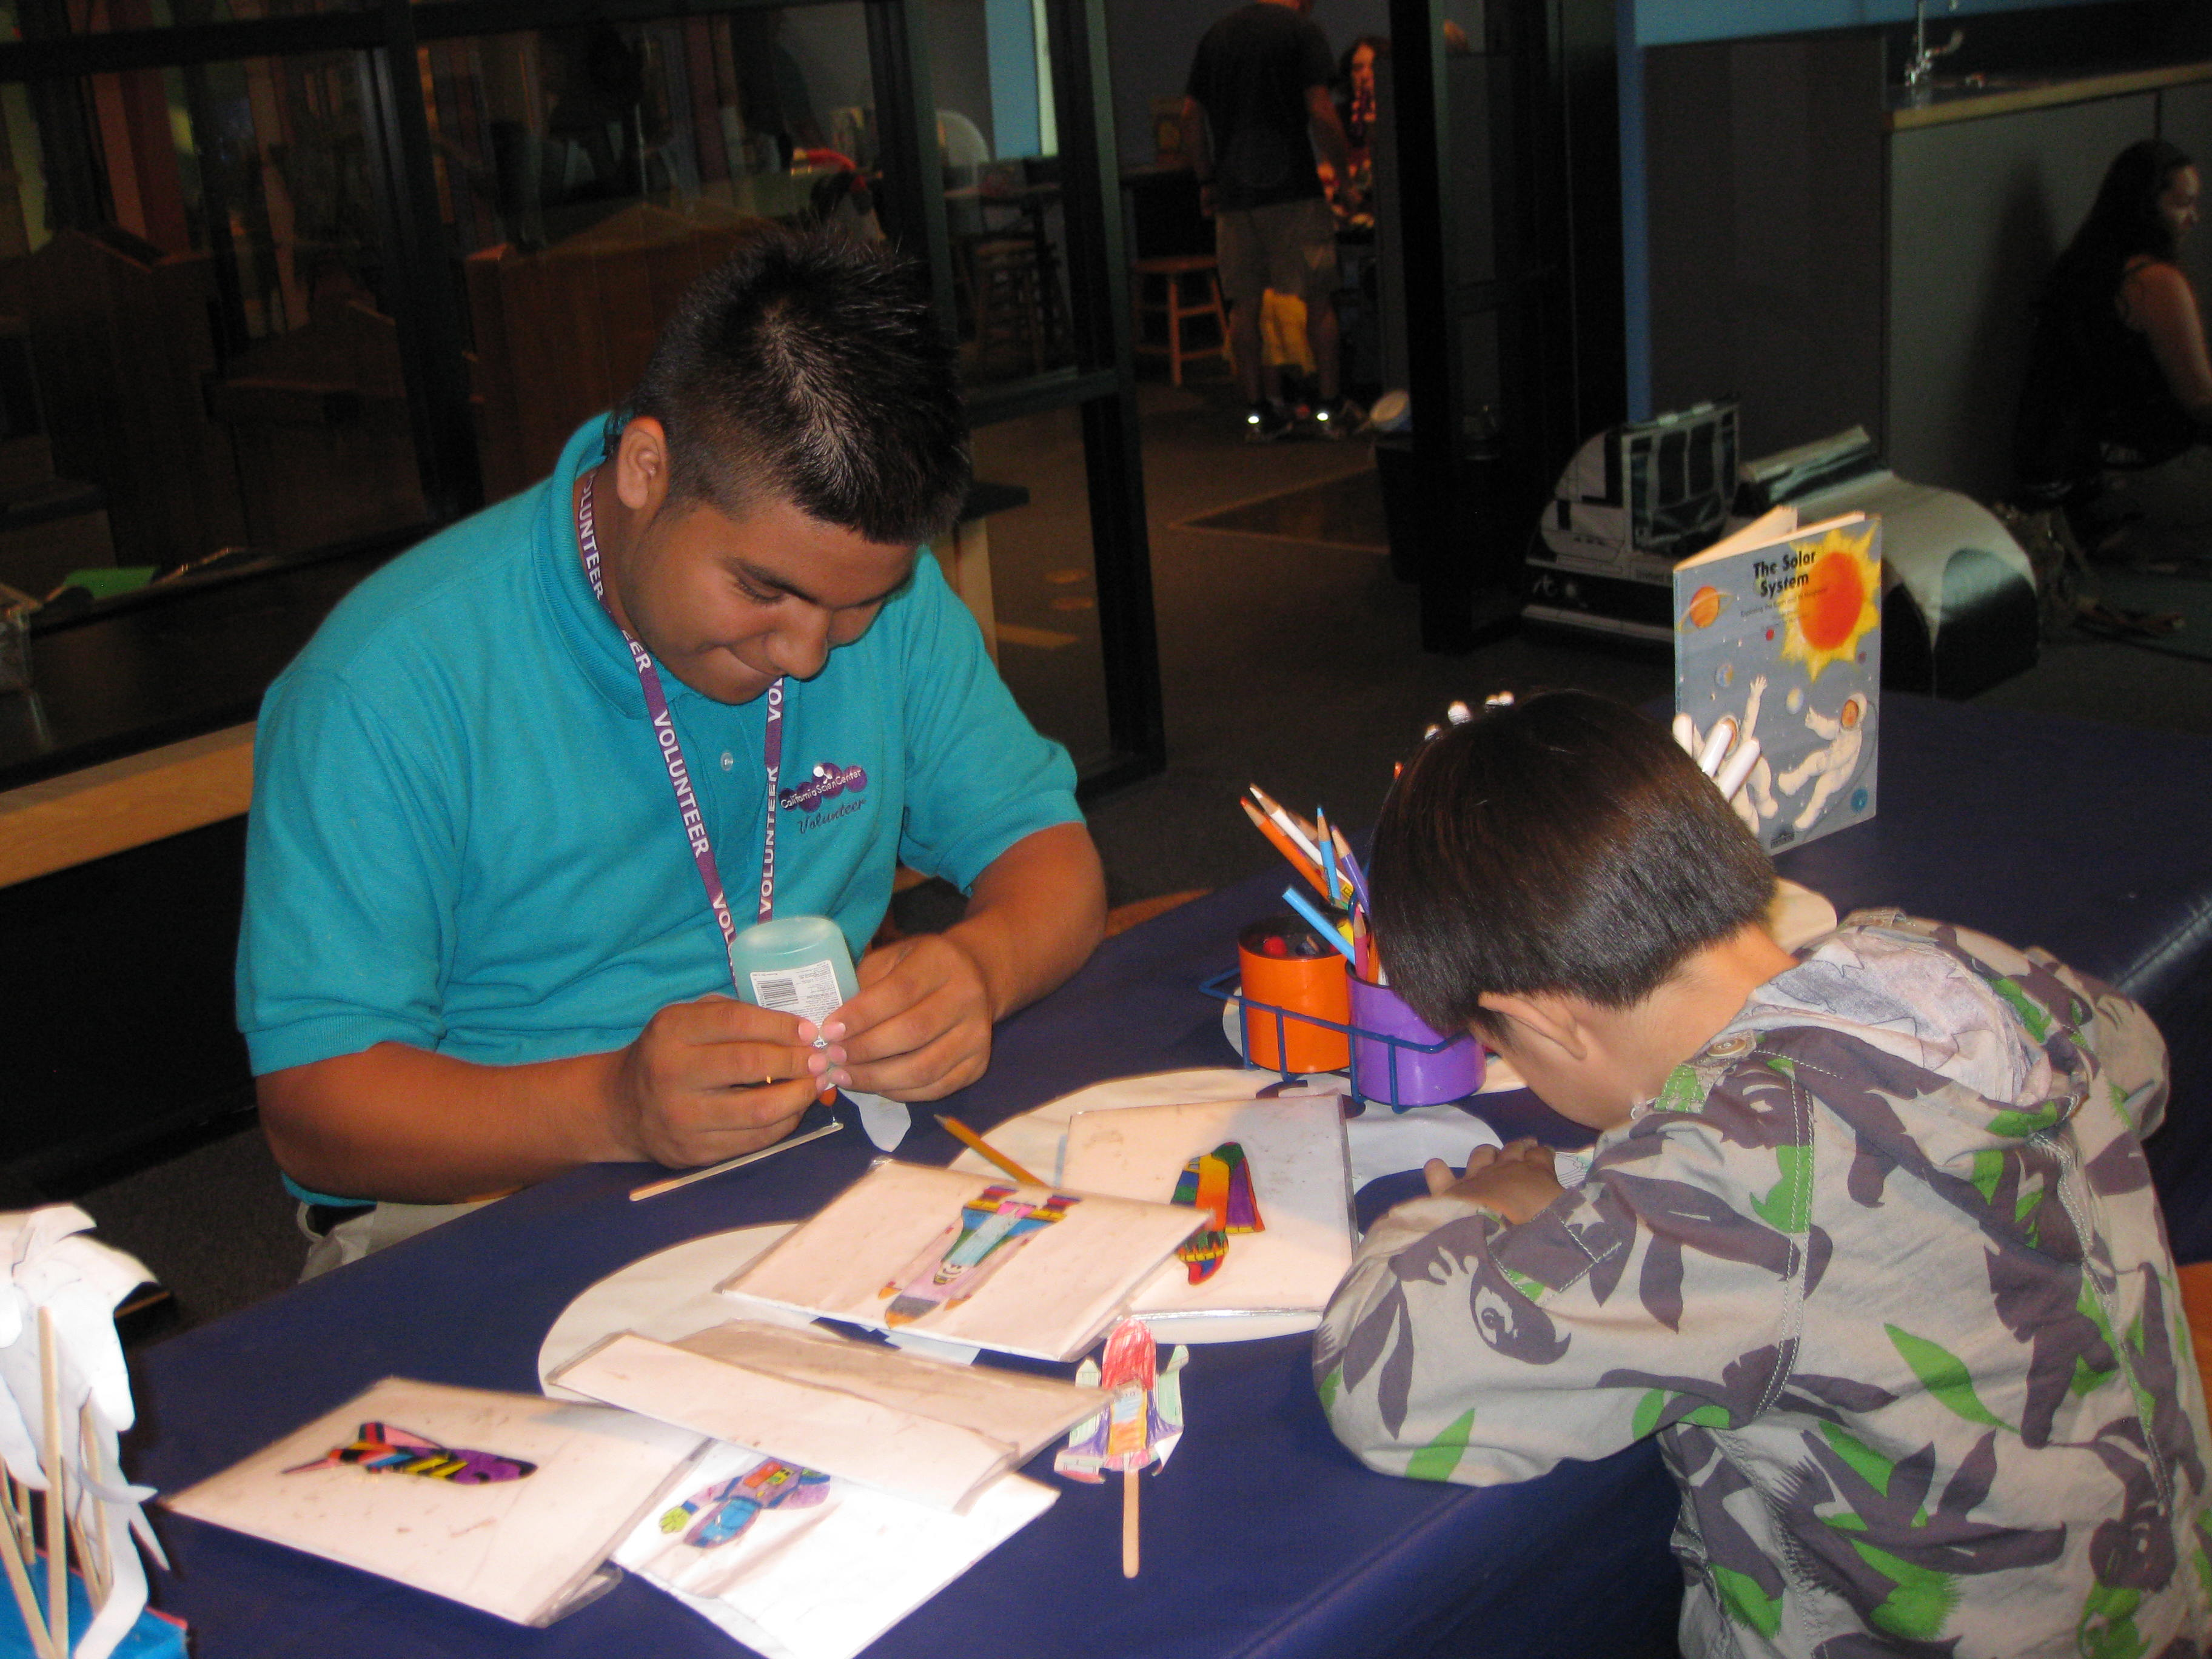 Discovery Room Volunteer wearing teal polo glues Endeavour craft with participating child